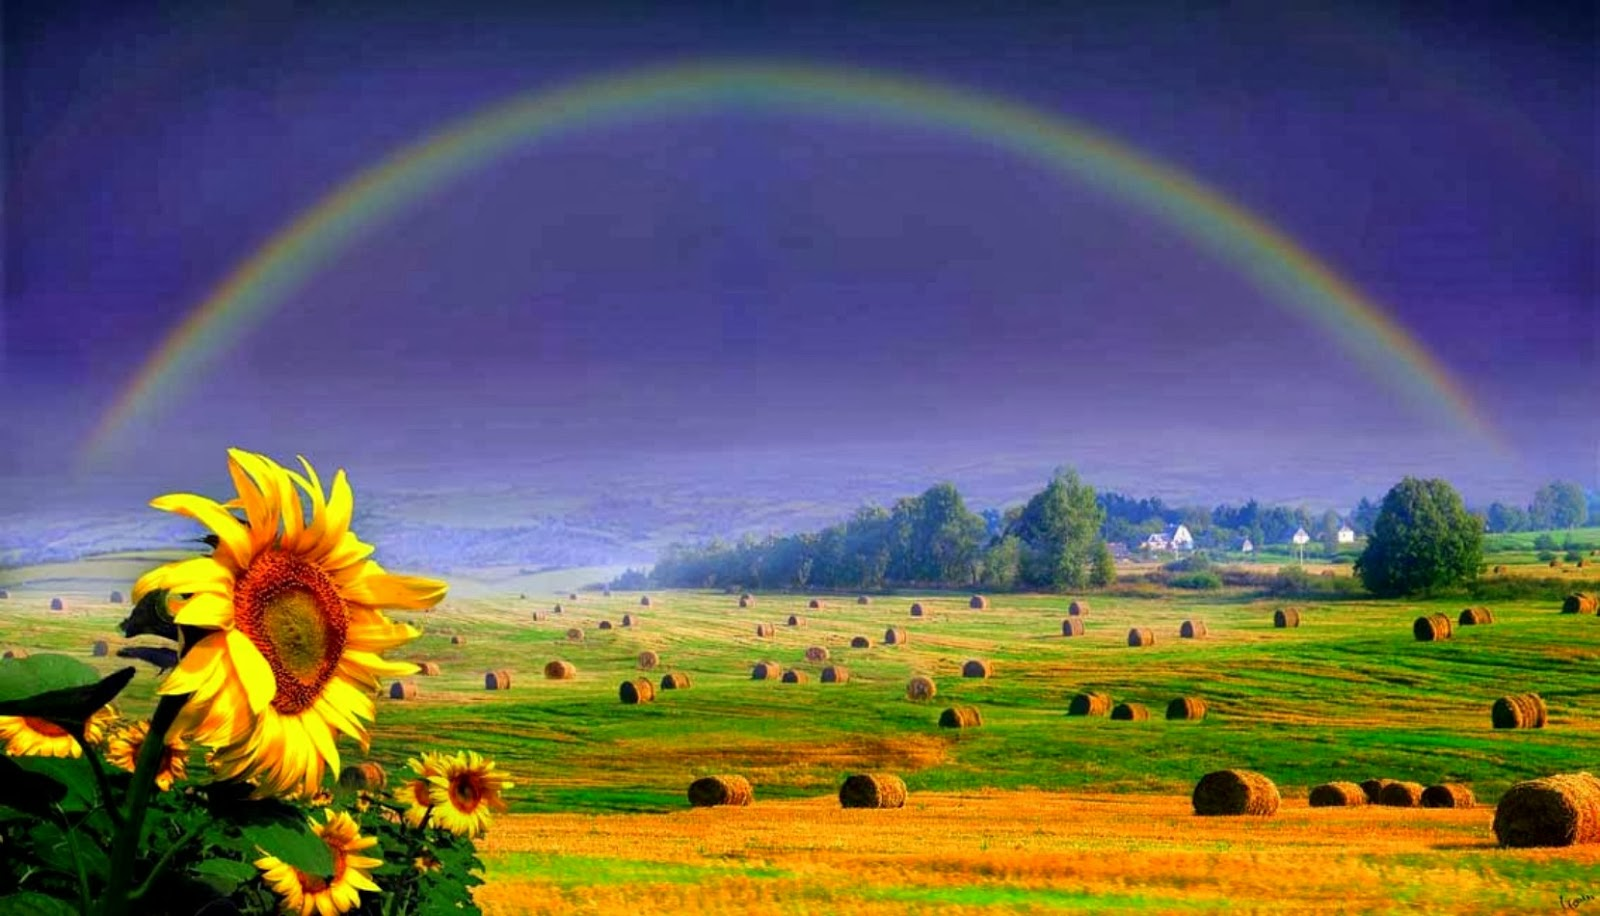 Download rainbow wallpapers most beautiful places in the world download rainbow wallpapers voltagebd Choice Image